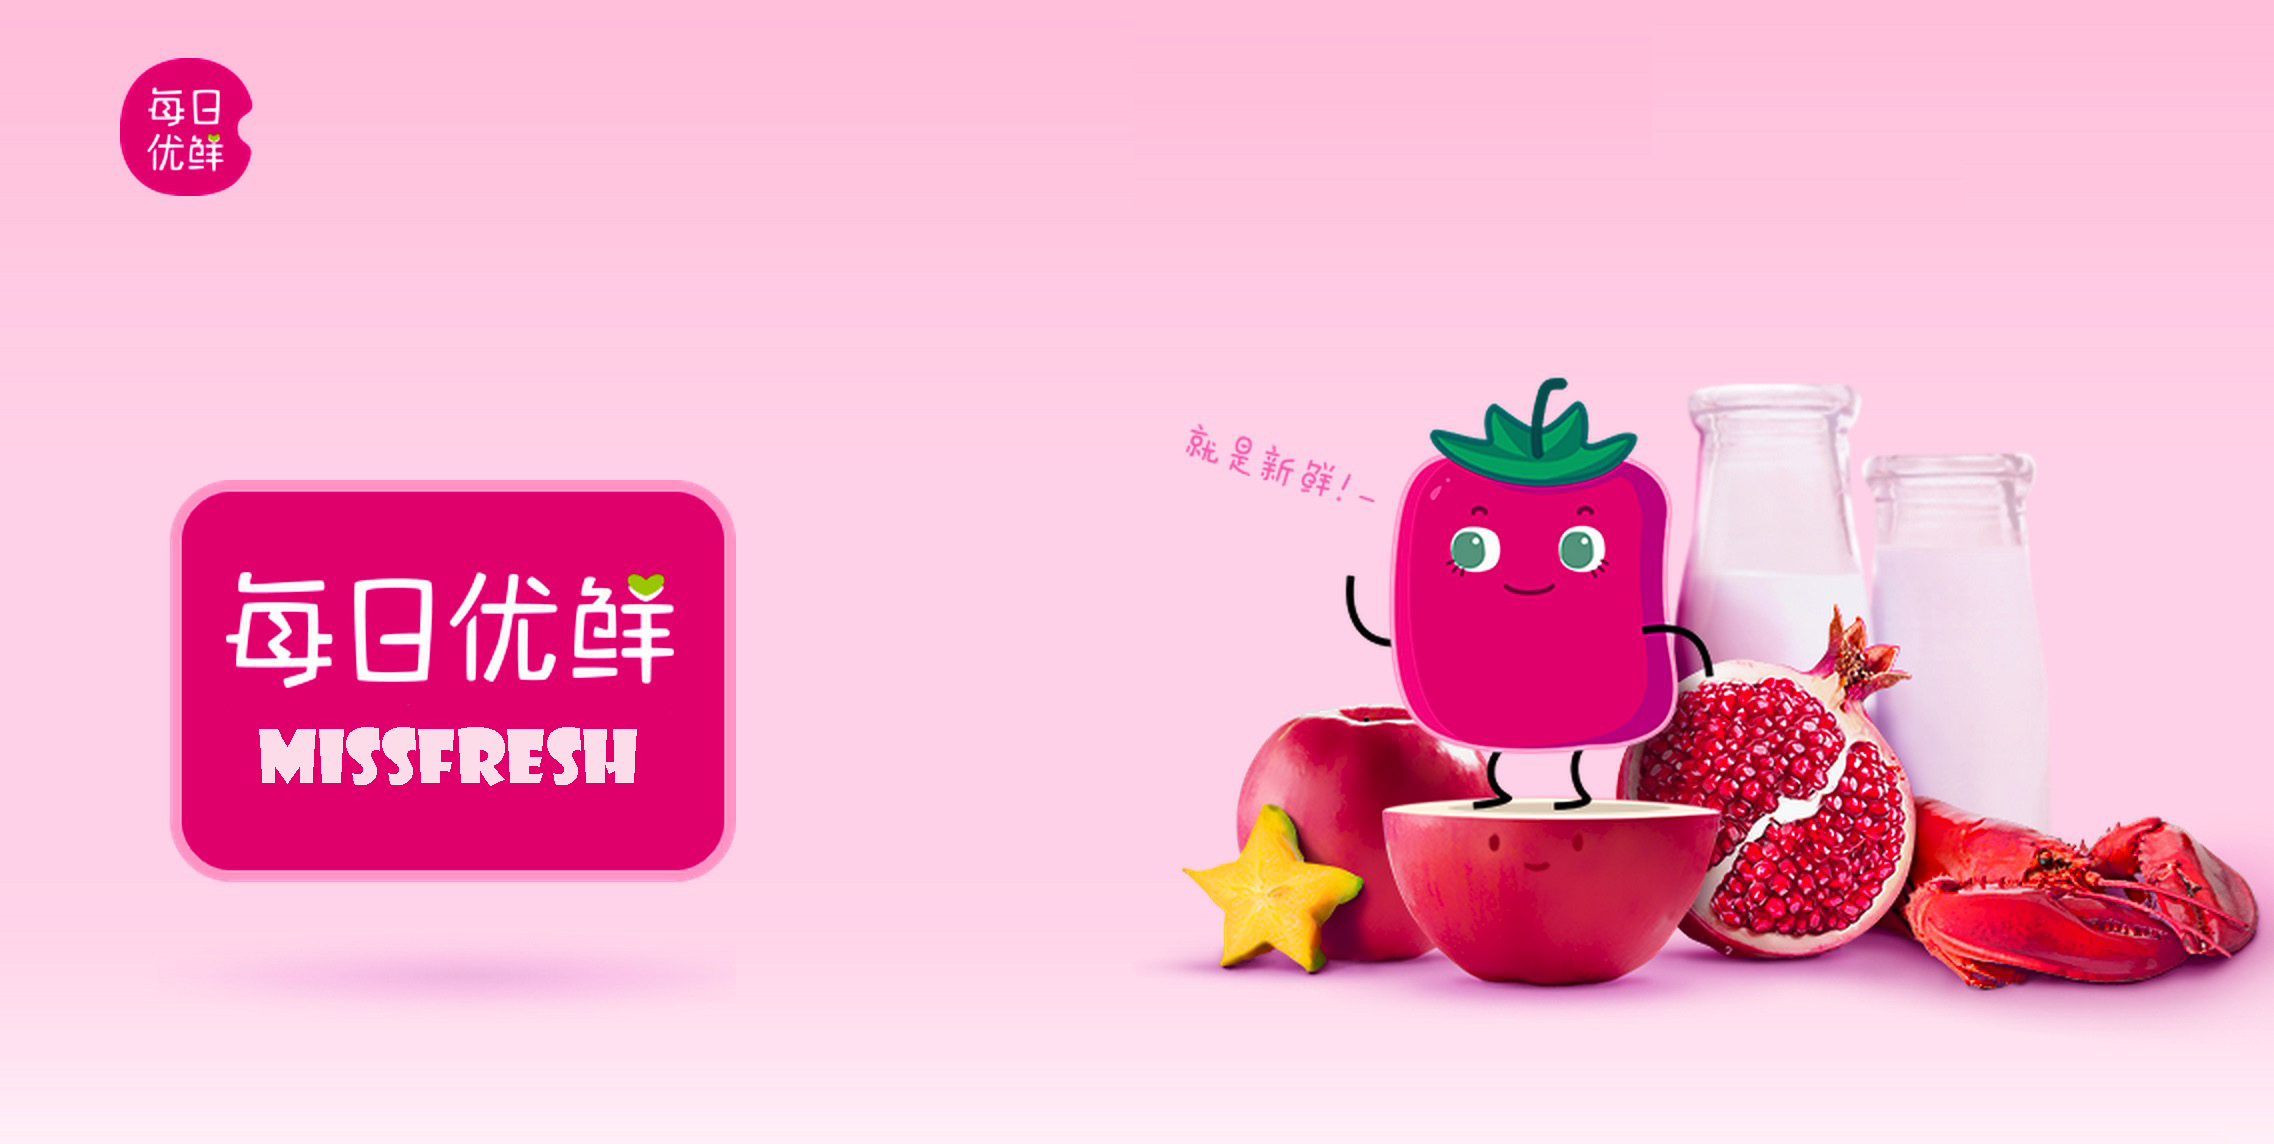 Tencent-backed Grocery Startup Missfresh Seeks New Funds